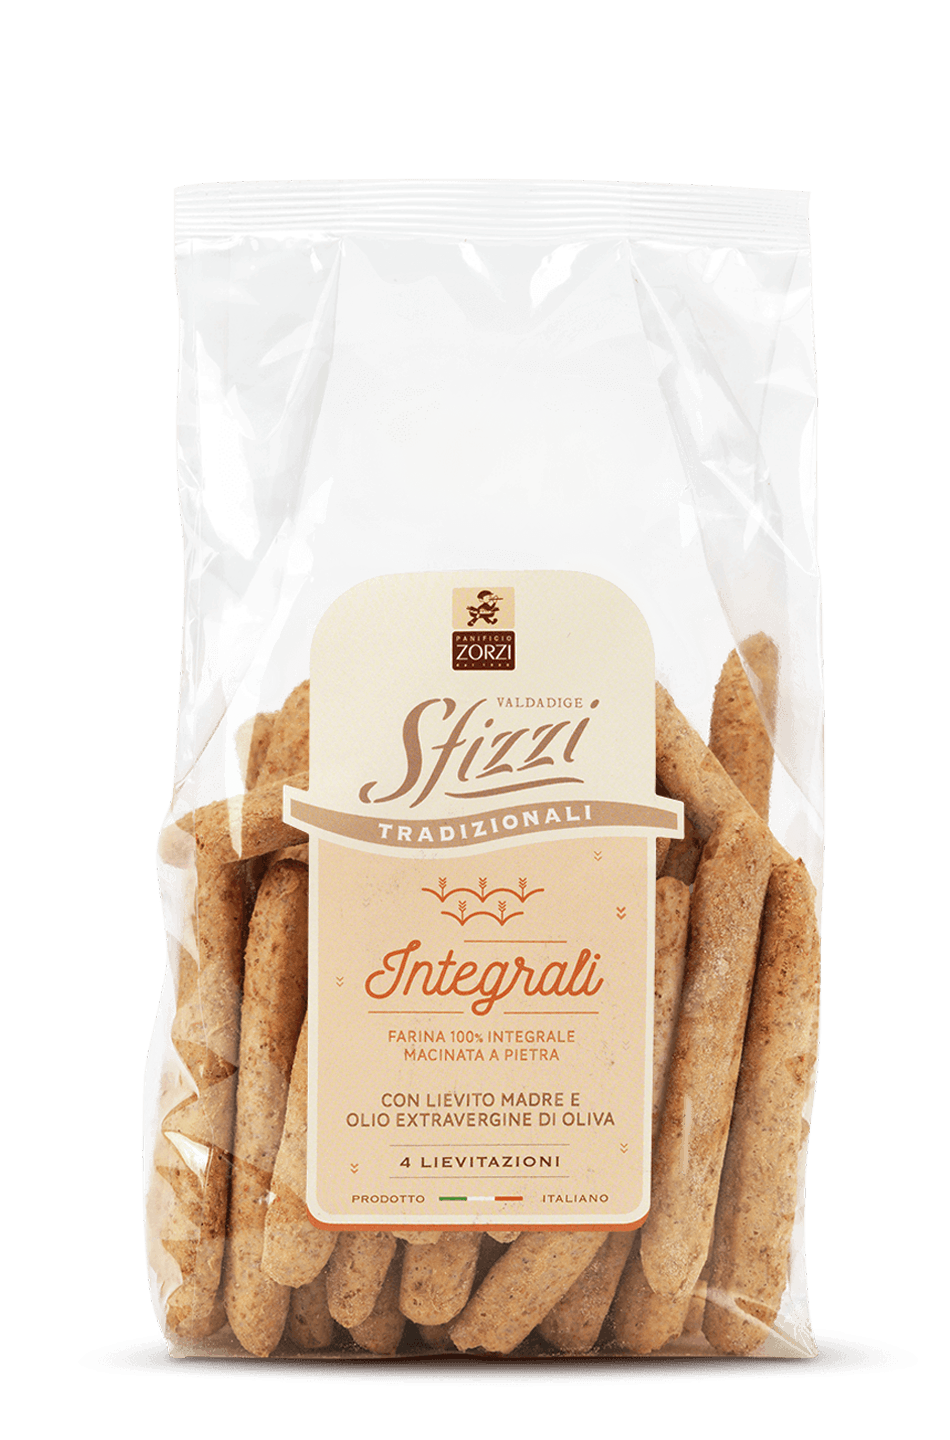 Whole Wheat Sfizzi Mini Breadsticks